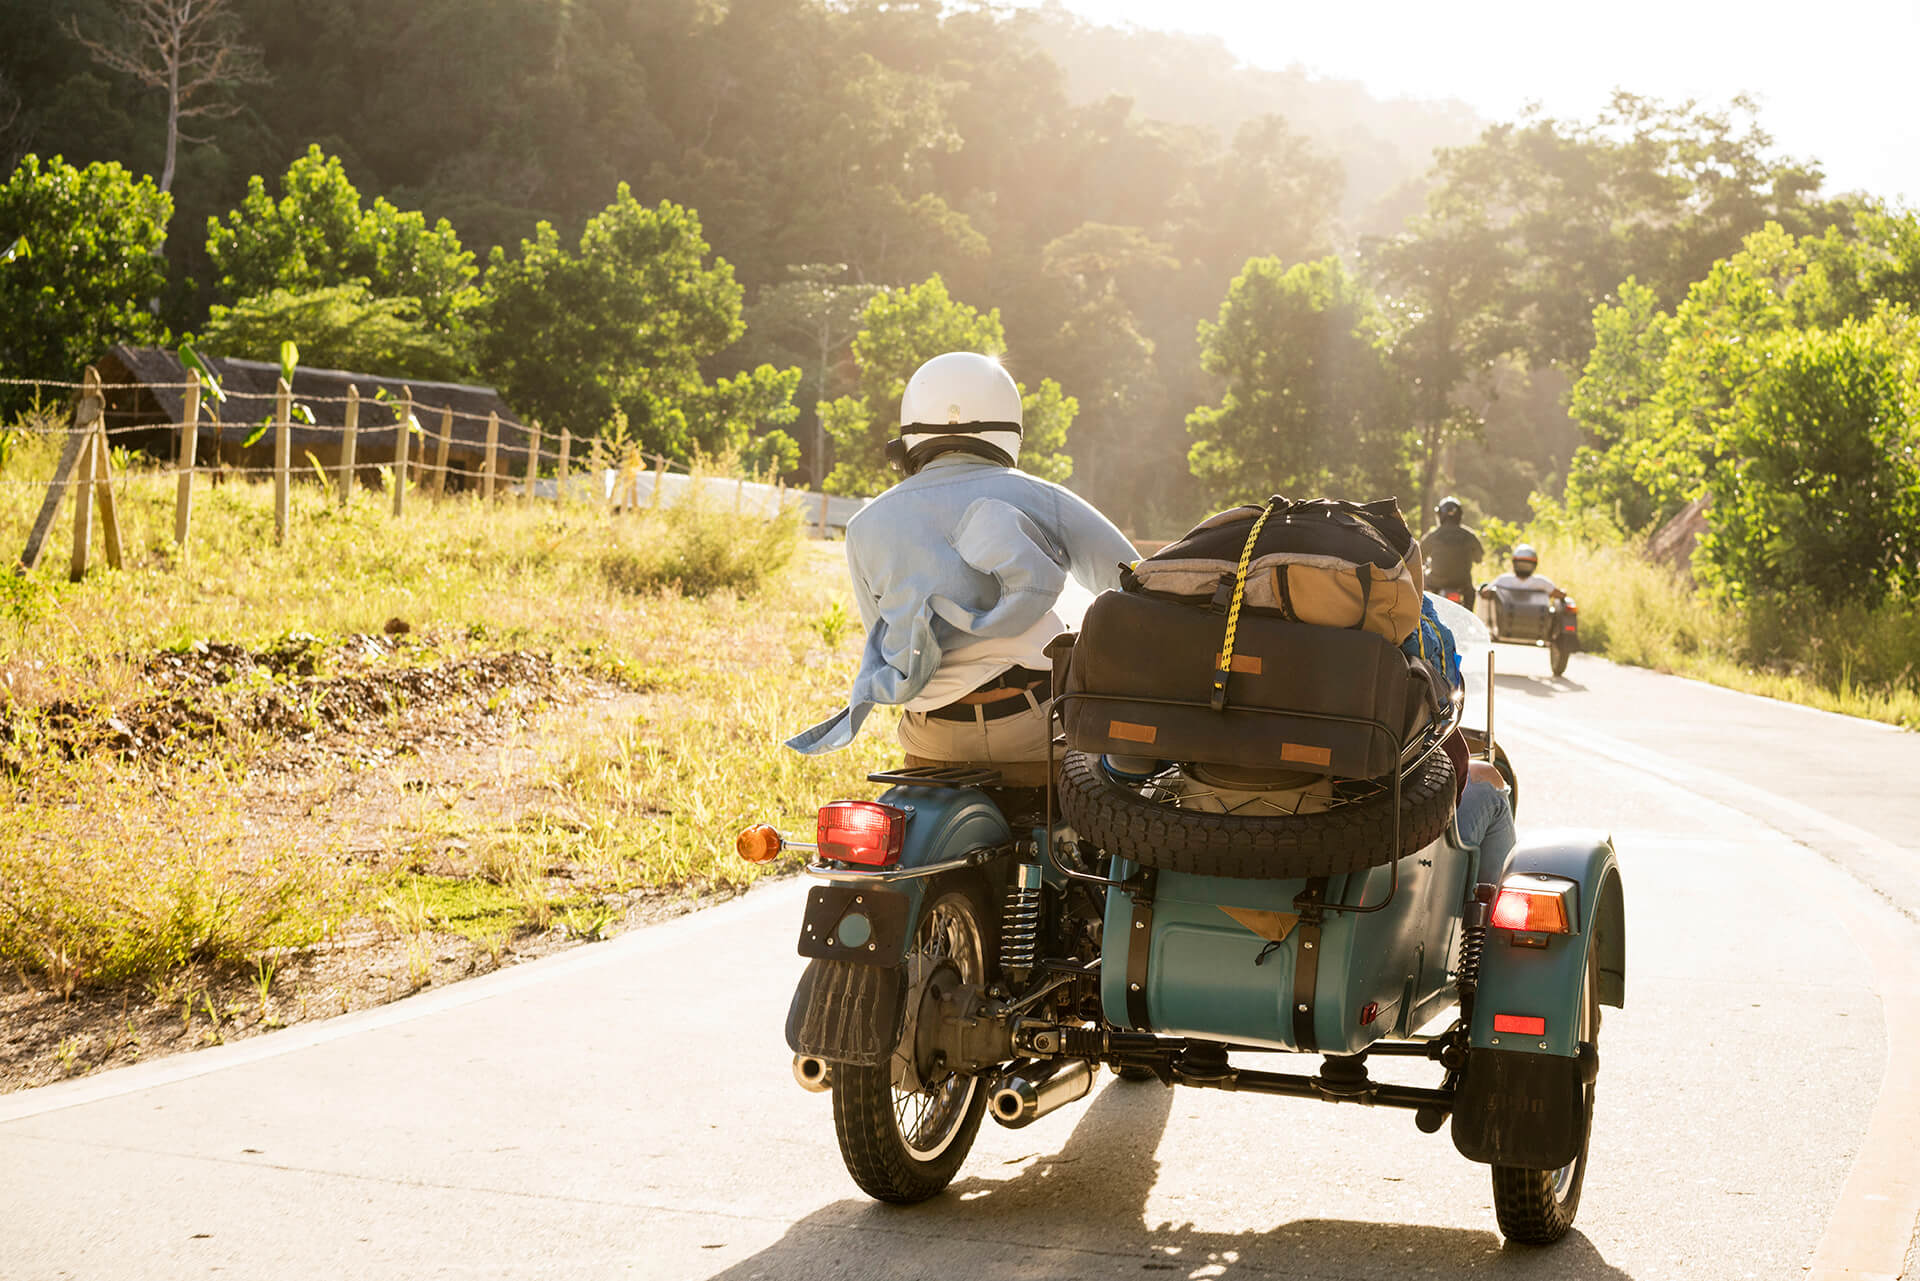 On the road to San Vicente aboard a Ural at 100 kph; gear safely stowed away.